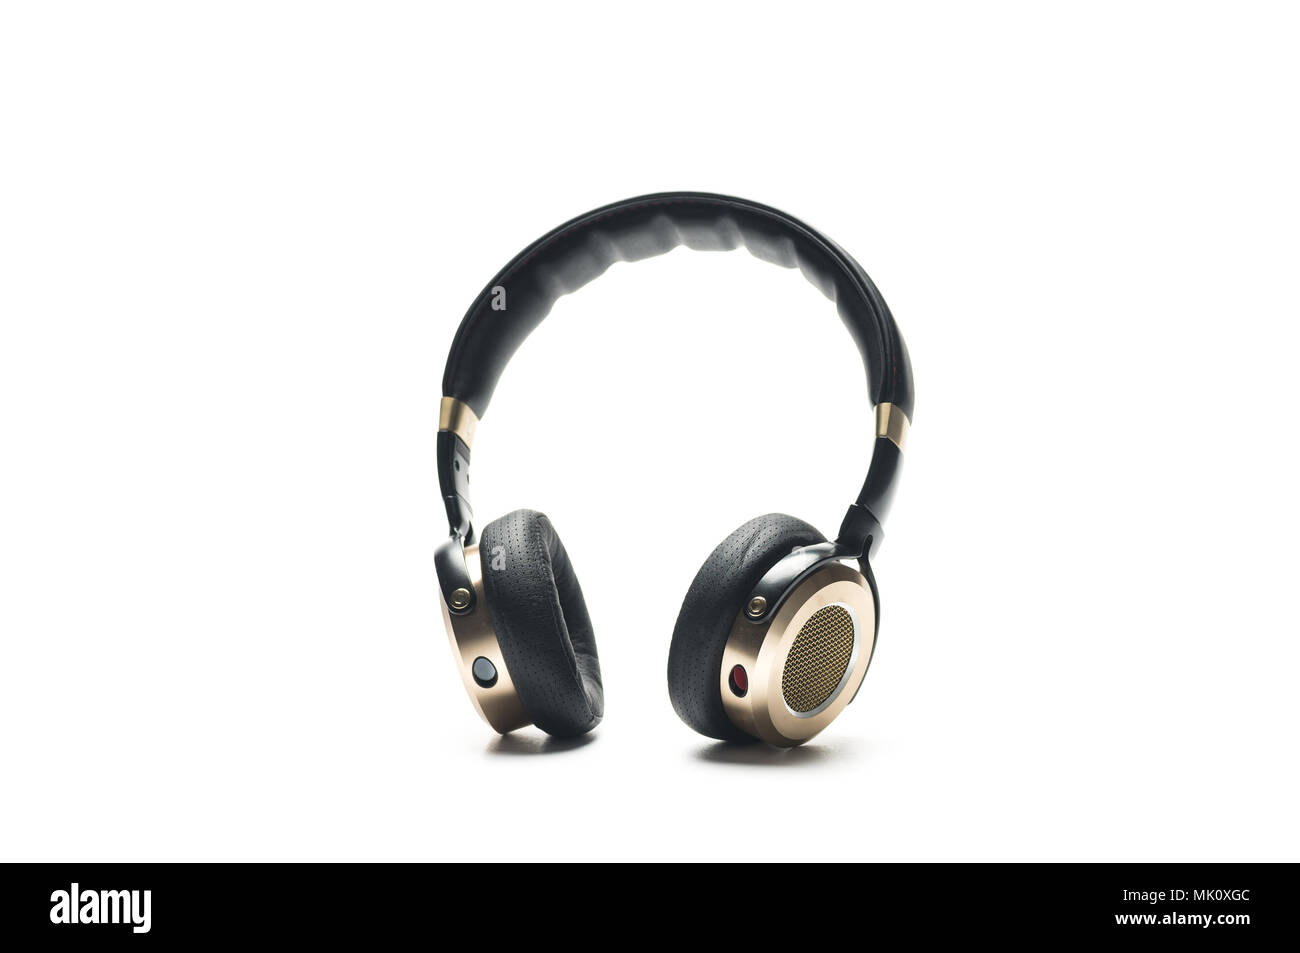 Black Headphones Isolated on White Background, with gold color and lether material. Stock Photo